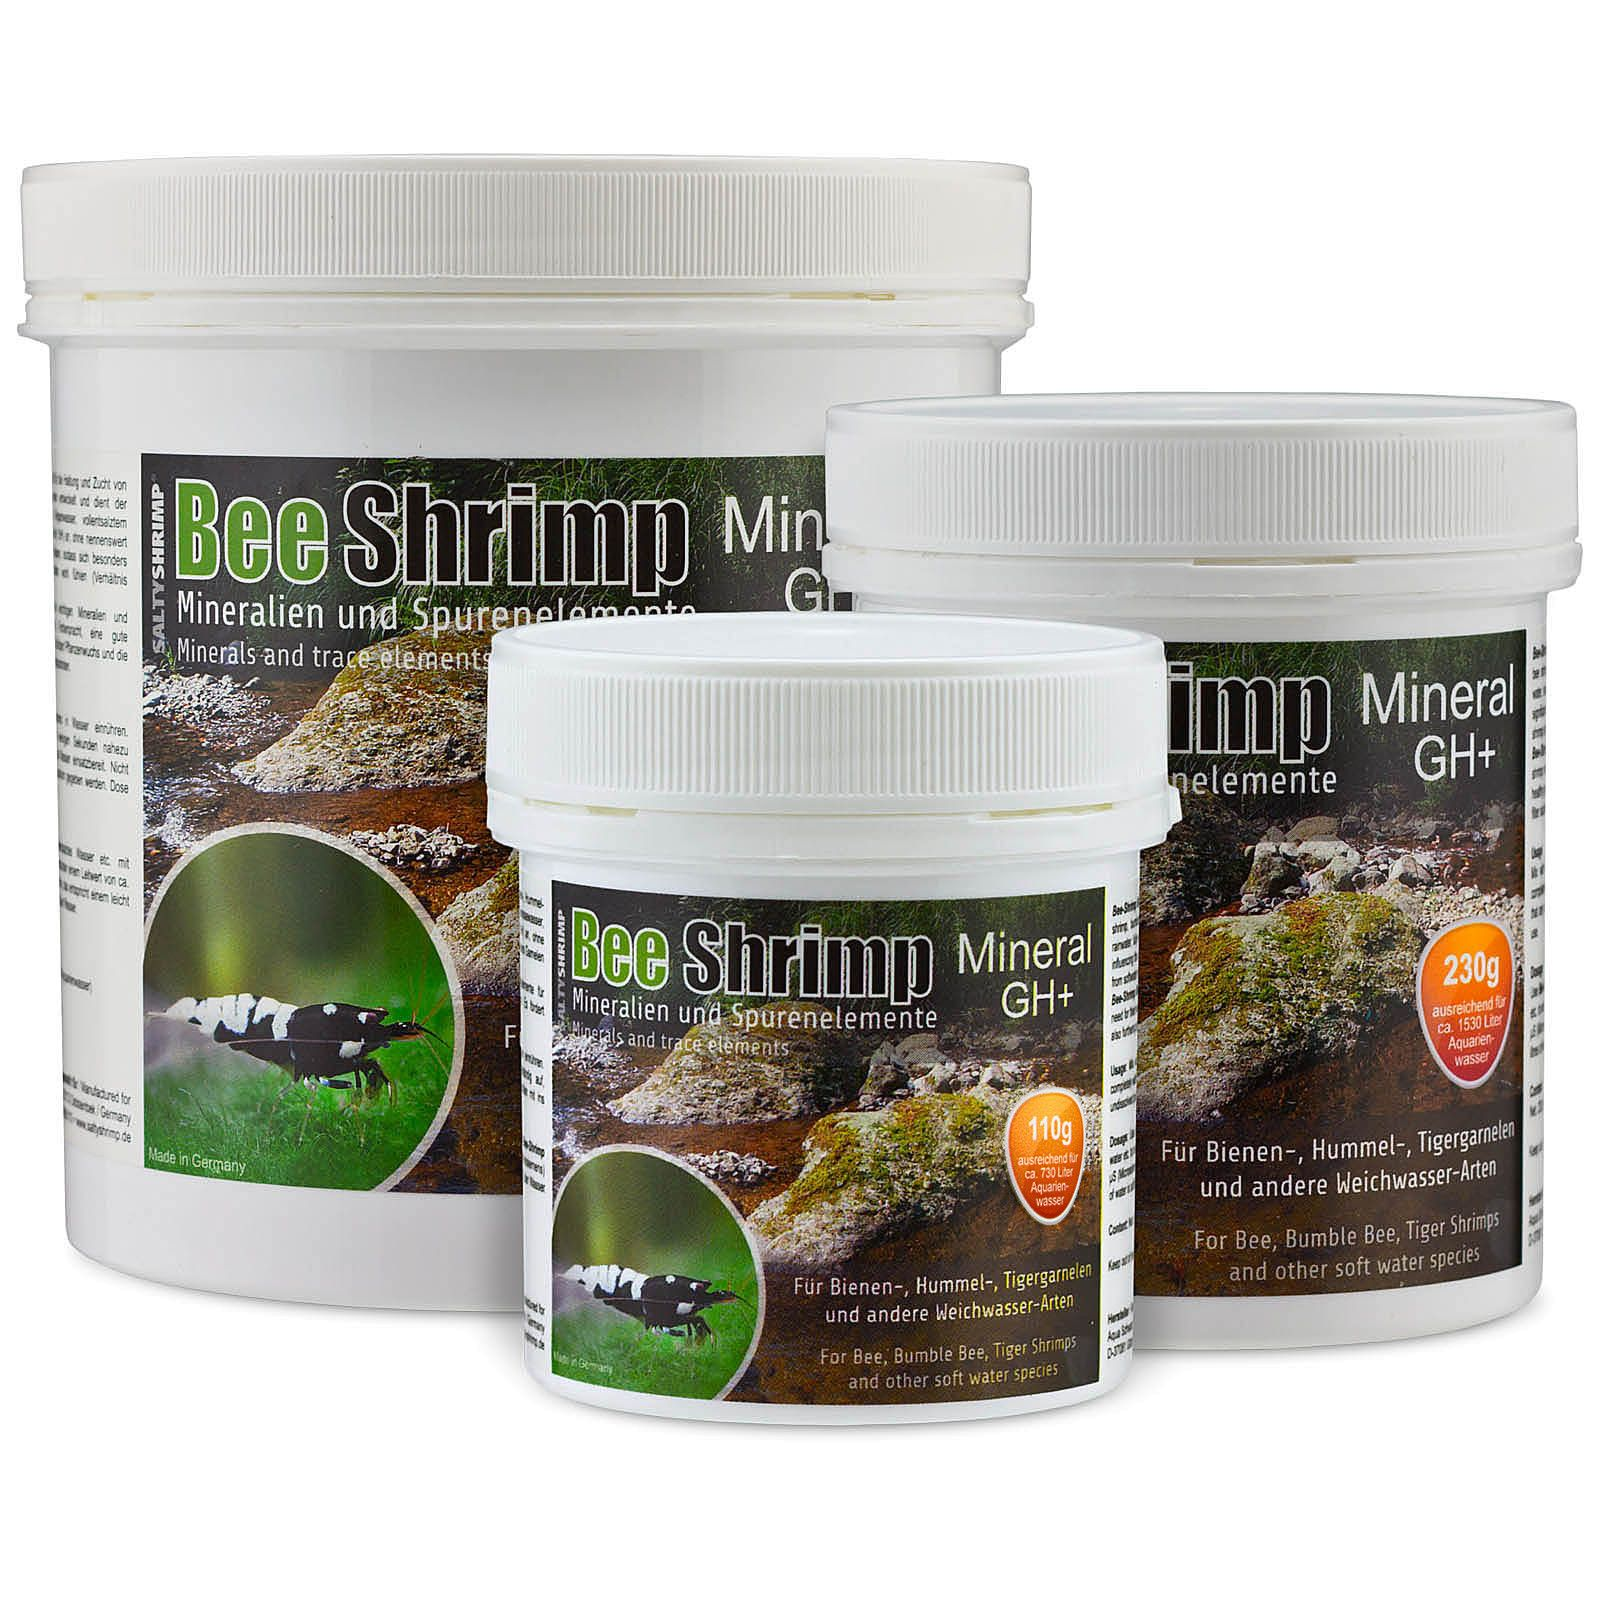 SaltyShrimp - Bee Shrimp Mineral GH+ - 230 g